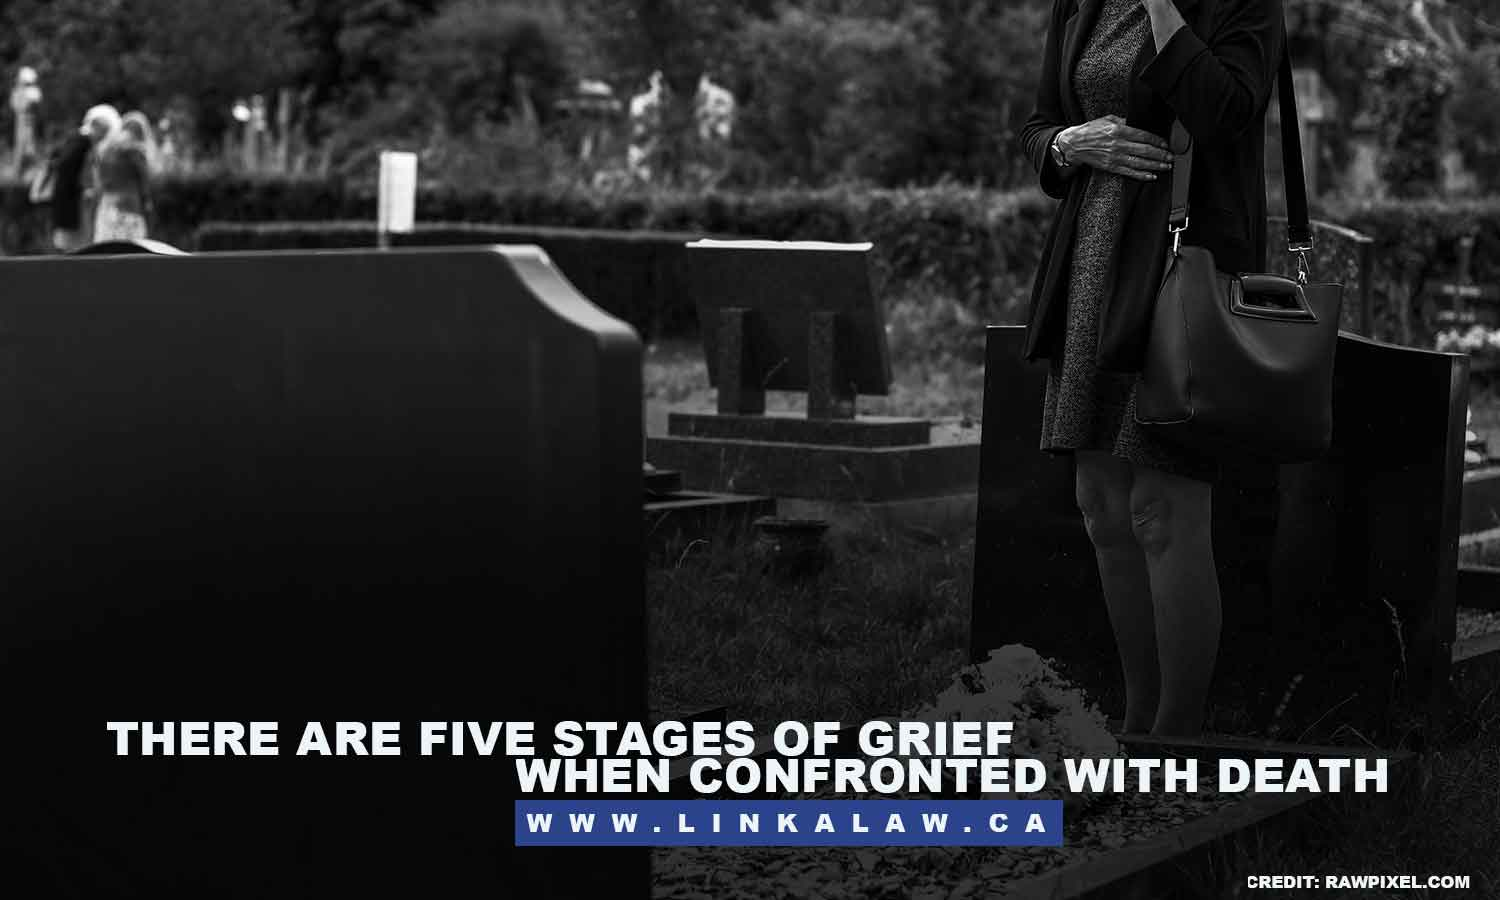 There are five stages of grief when confronted with death